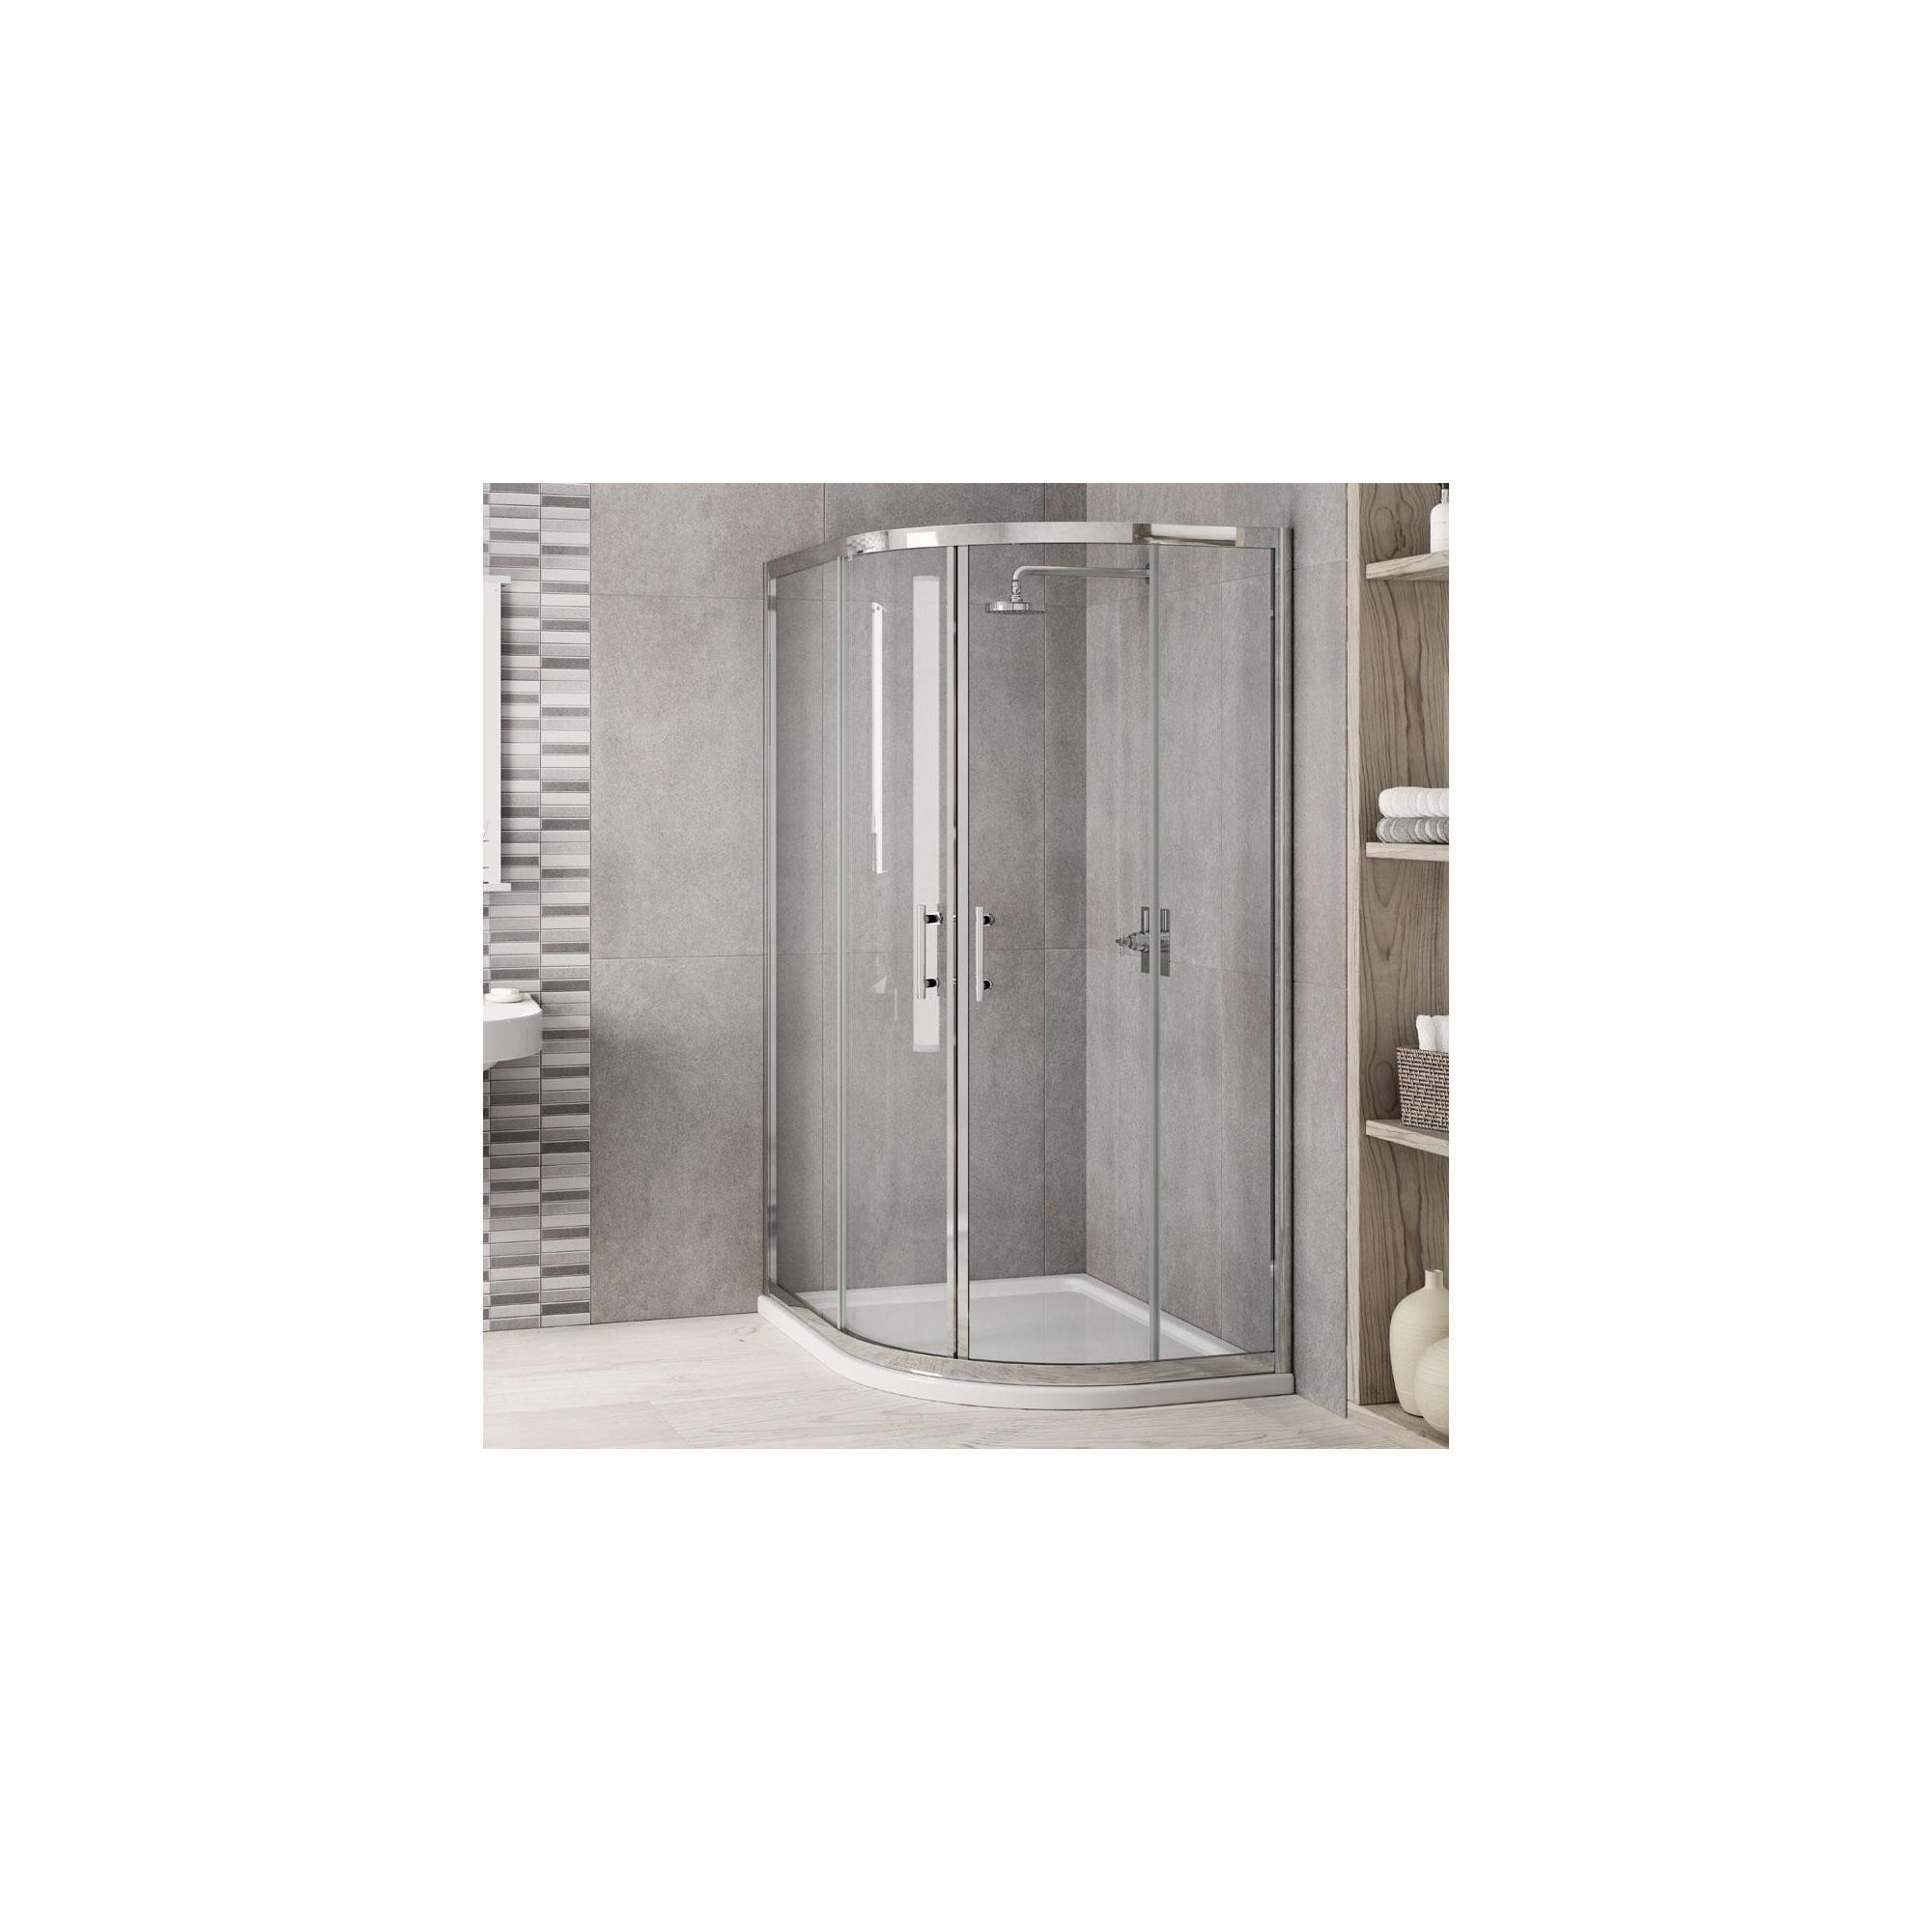 Elemis Inspire Two-Door Offset Quadrant Shower Door, 1200mm x 900mm, 6mm Glass at Tesco Direct